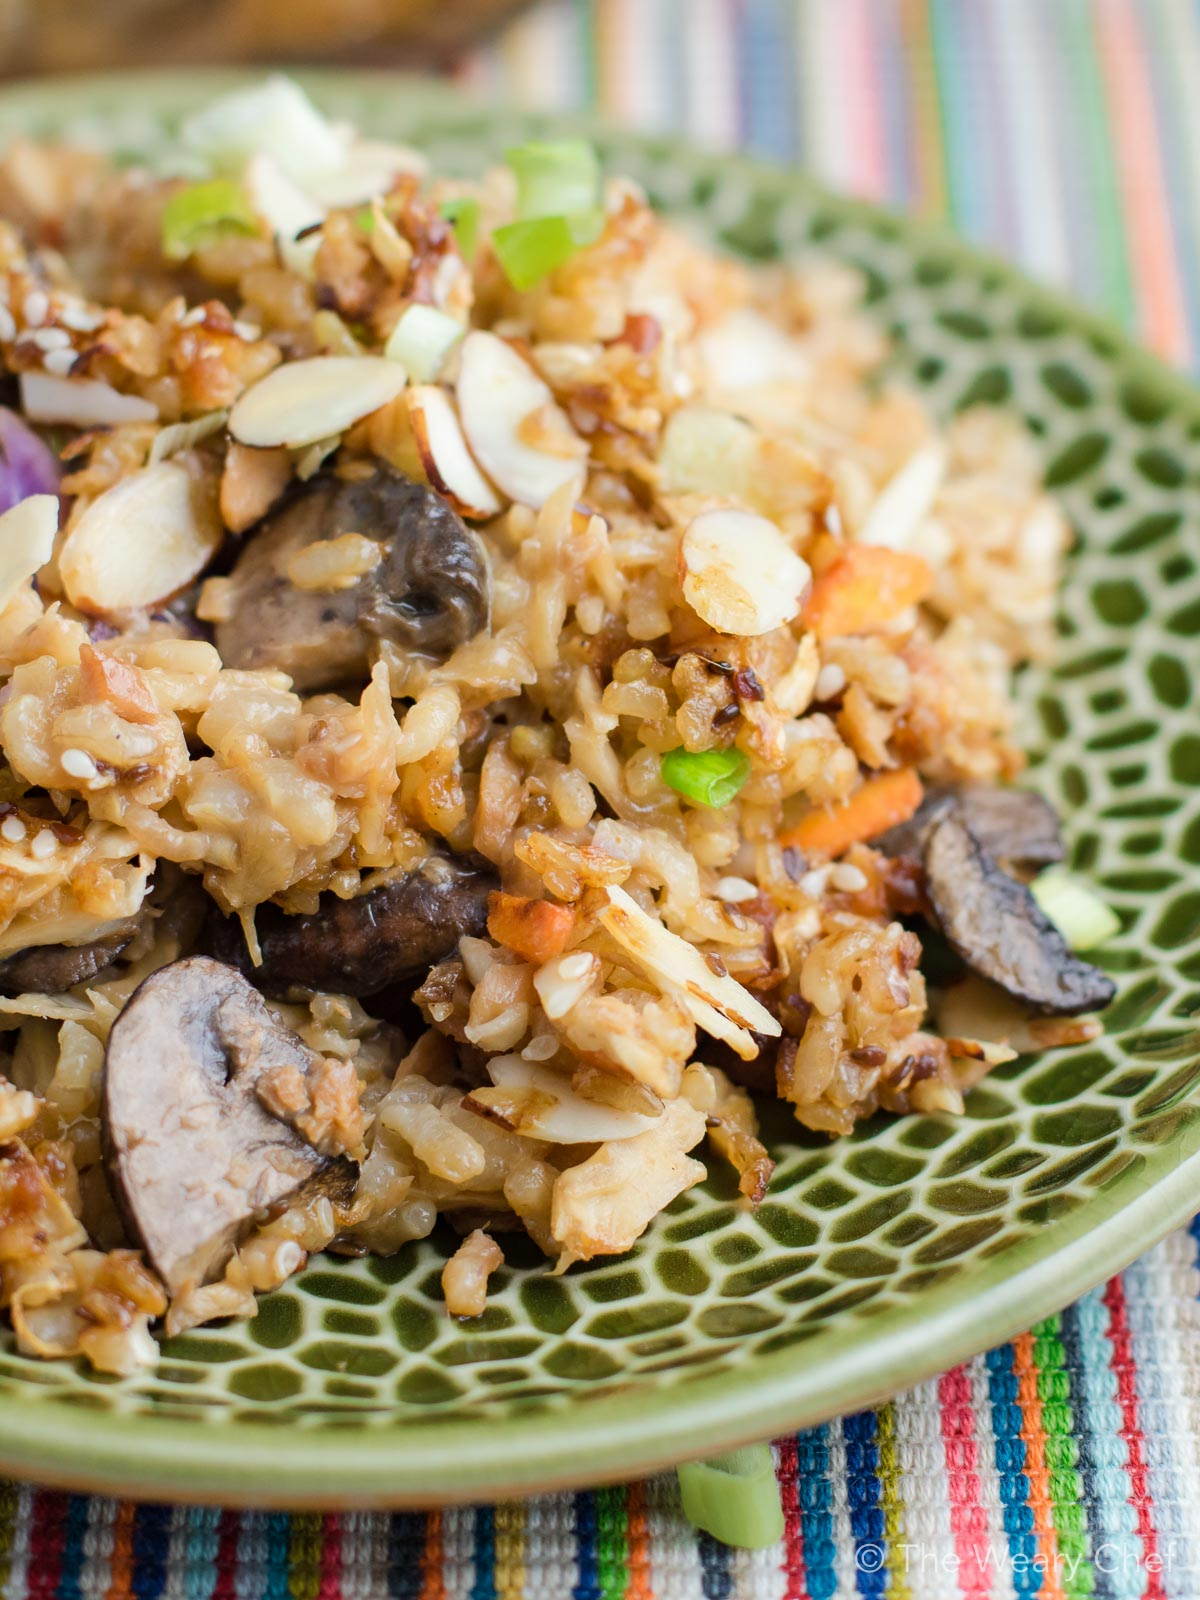 Dig into Teriyaki Tilapia Casserole for a weeknight dinner the whole family will love!